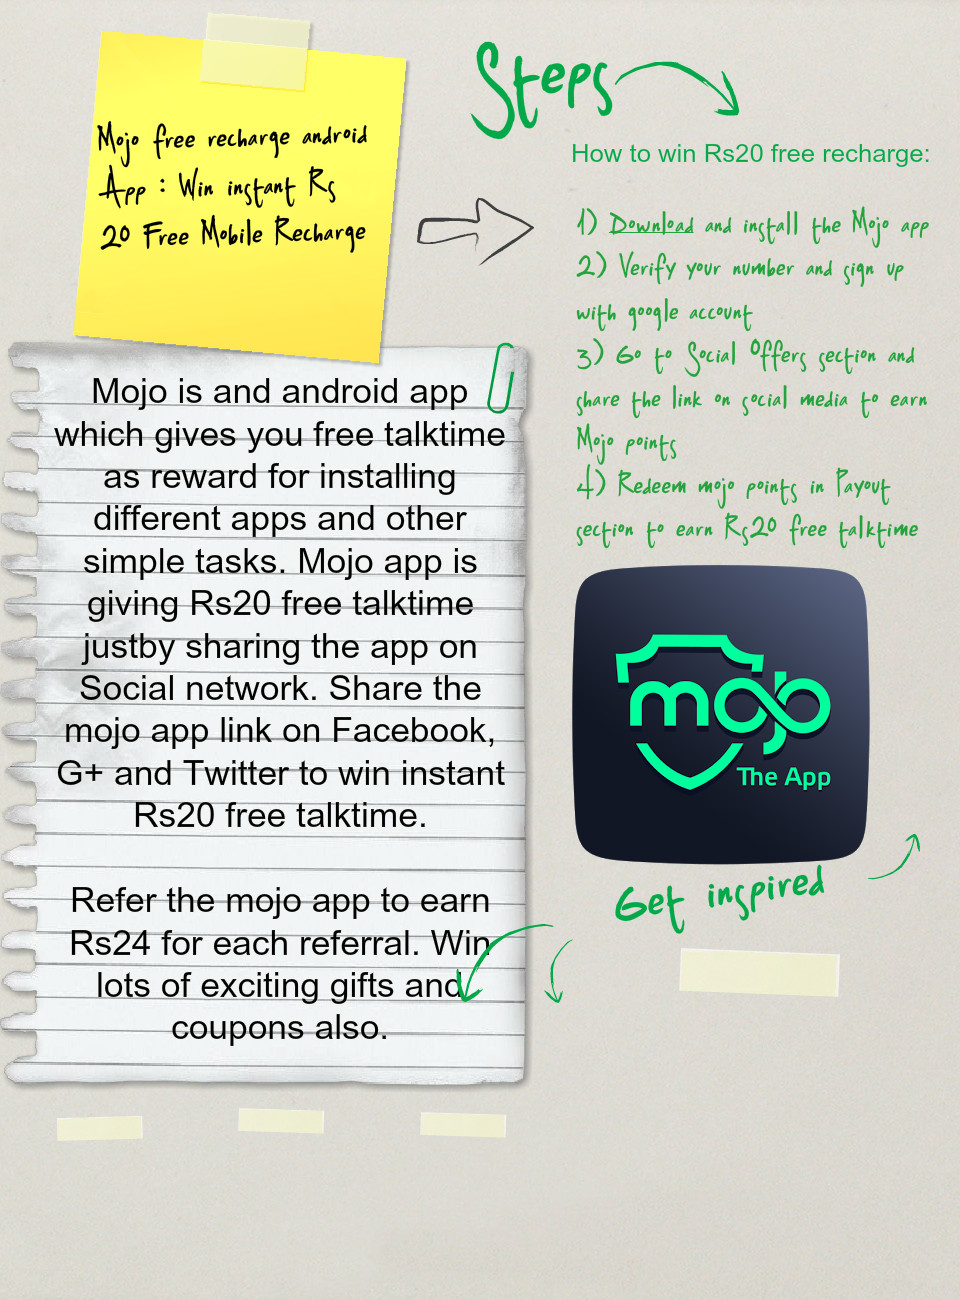 Mojo free recharge android App : Win instant Rs 20 Free